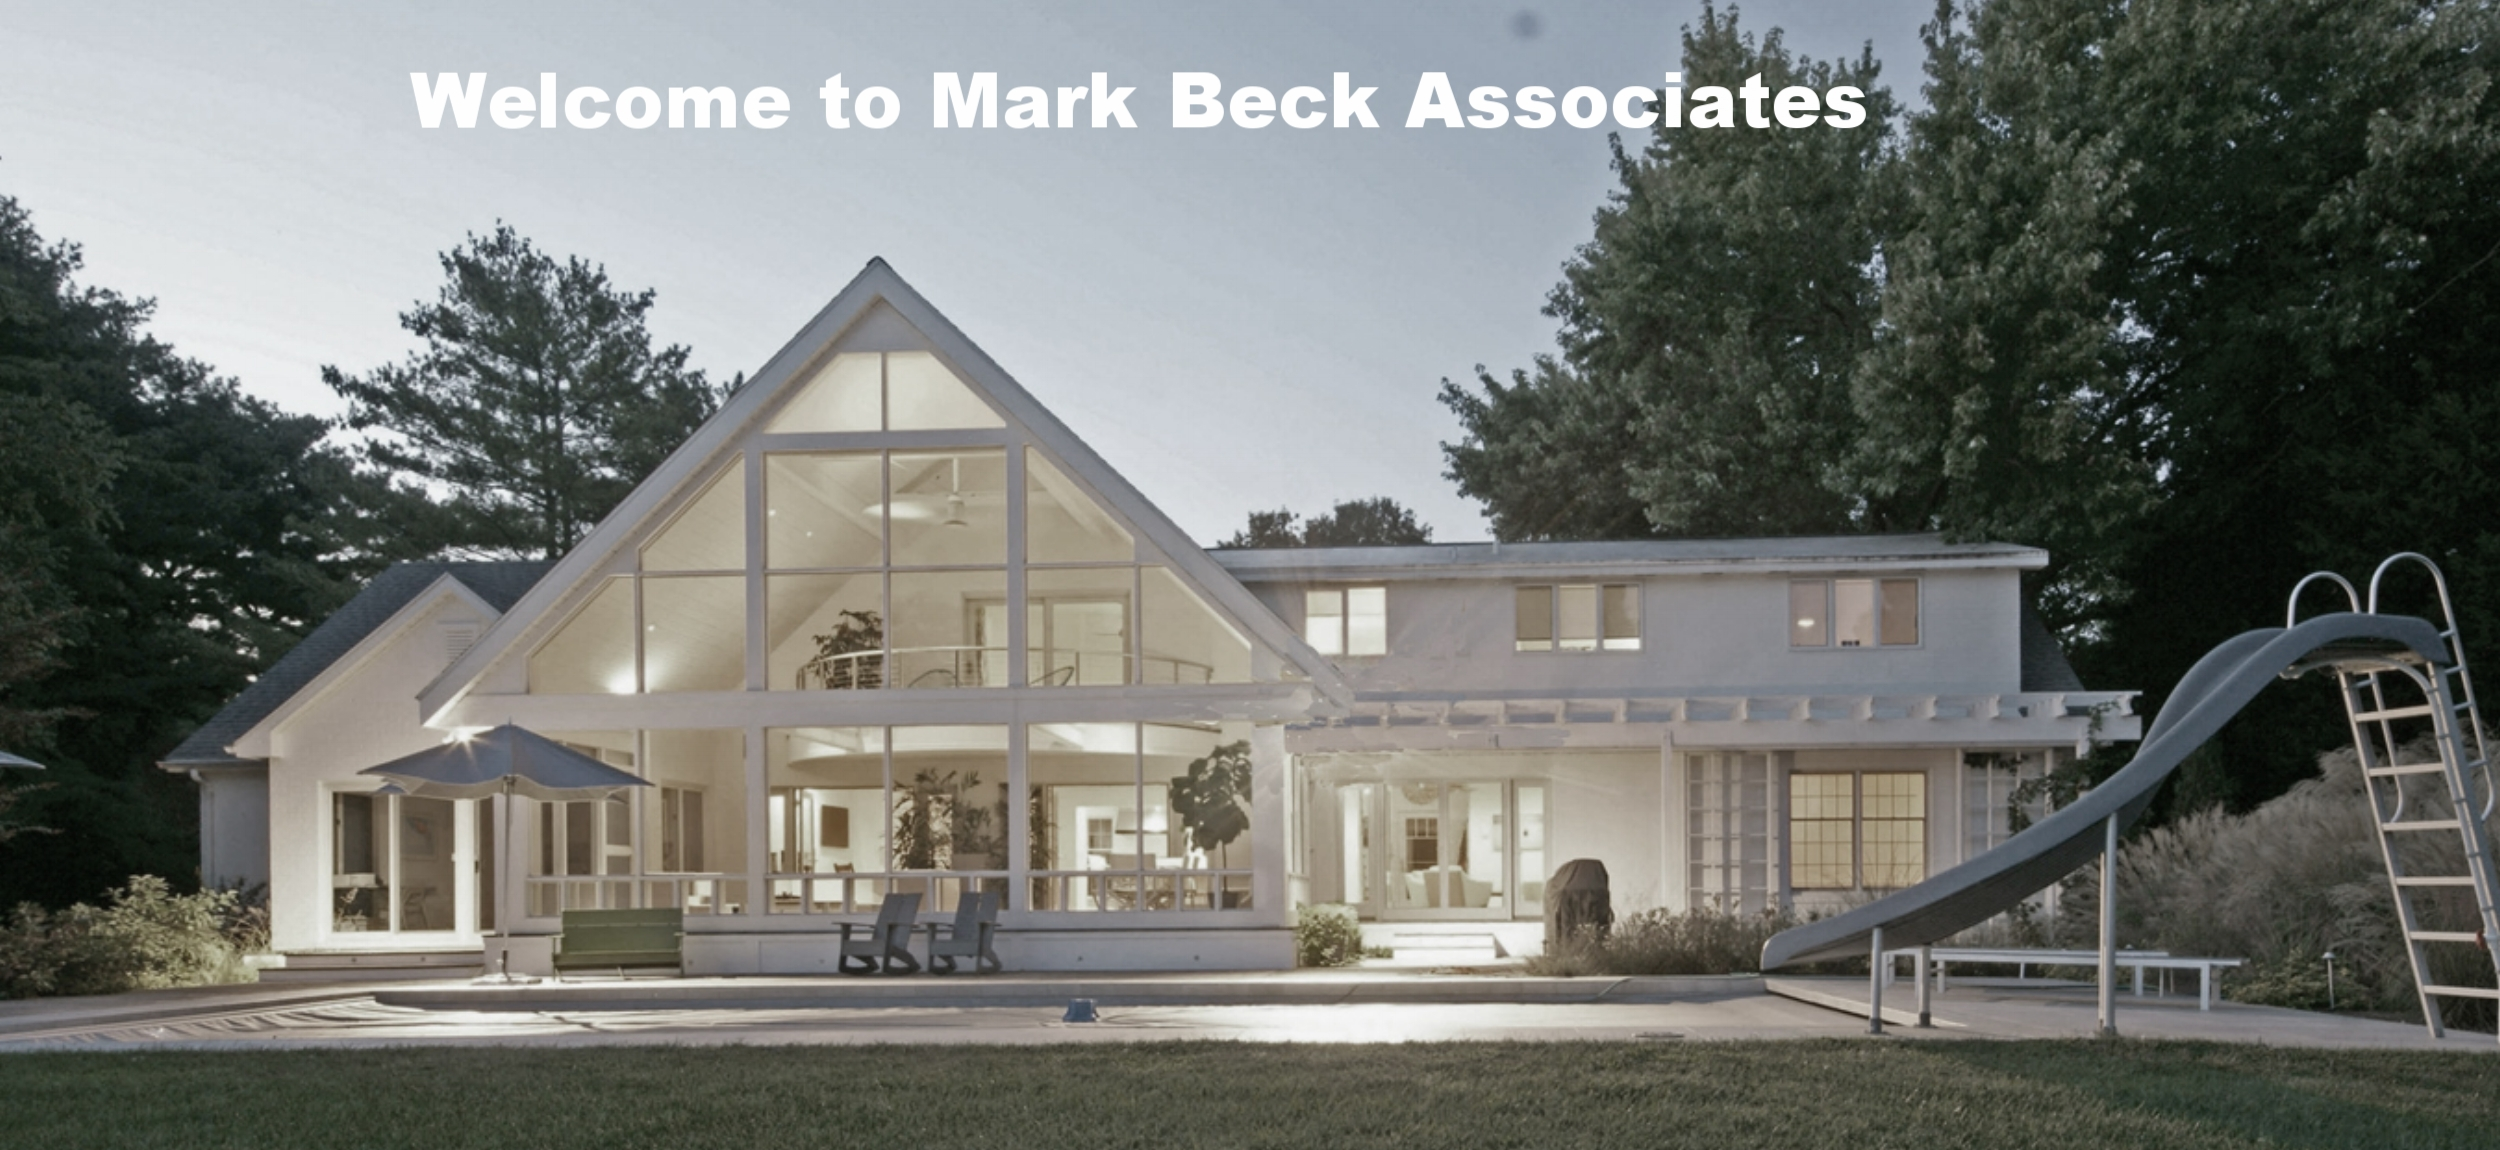 Welcome to Mark Beck Associates